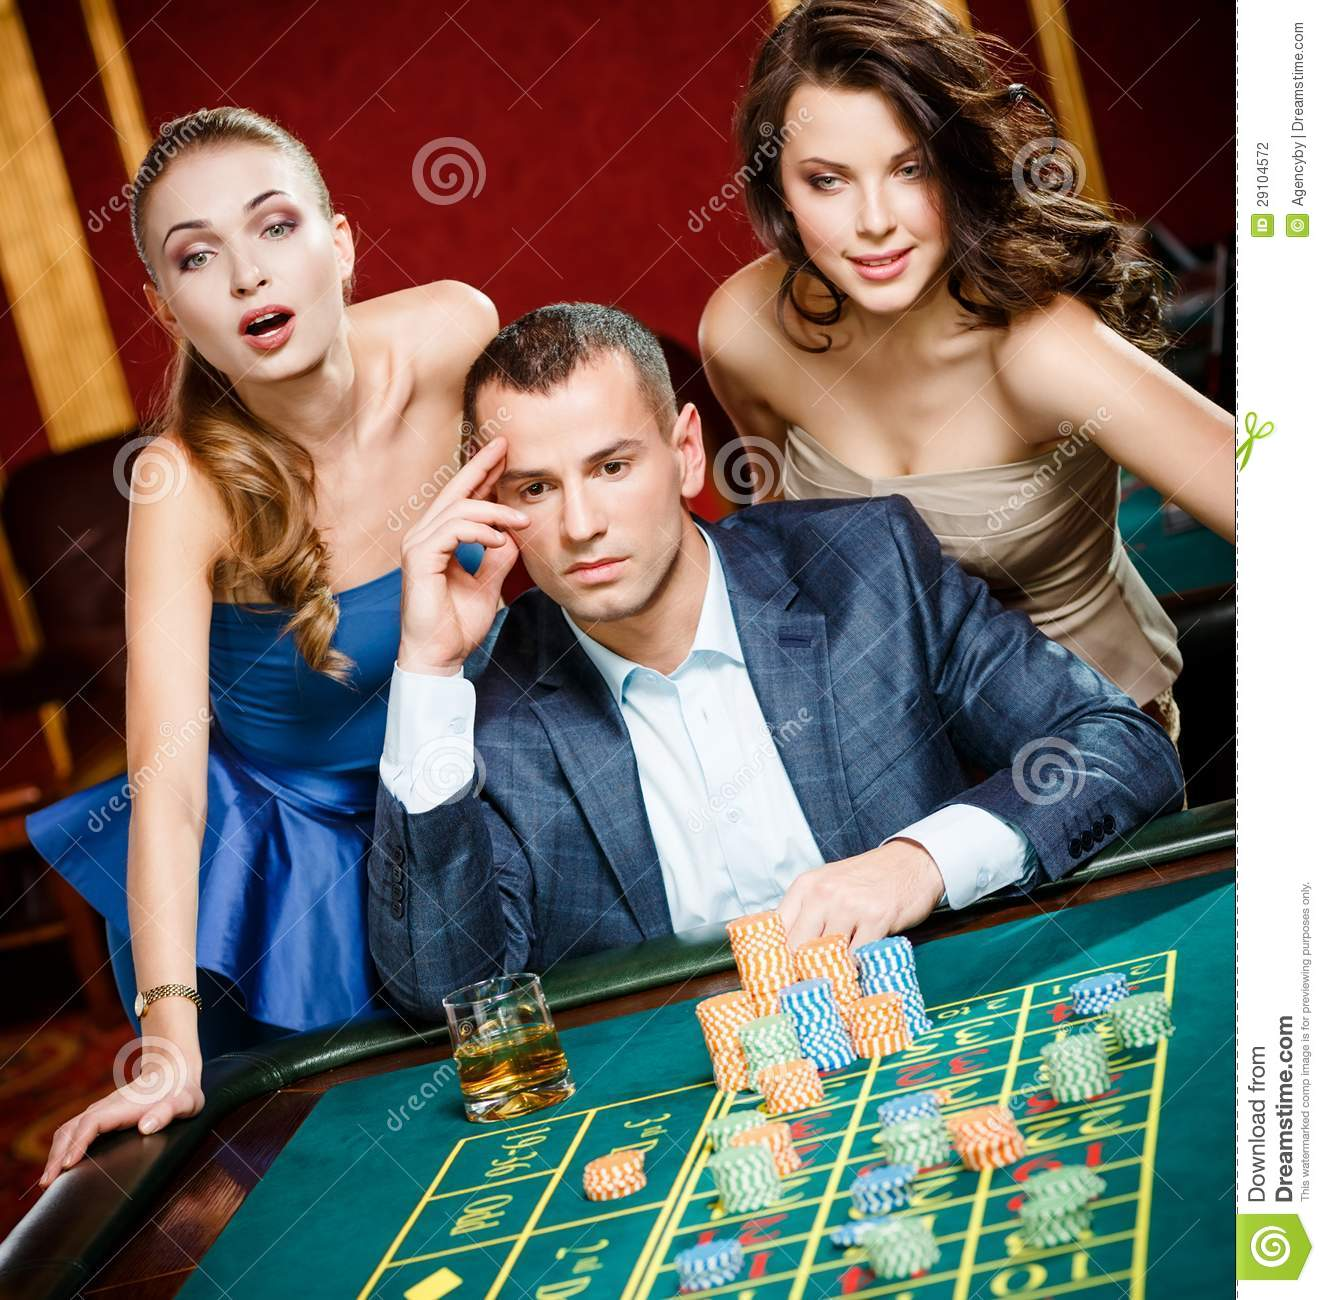 female roulette